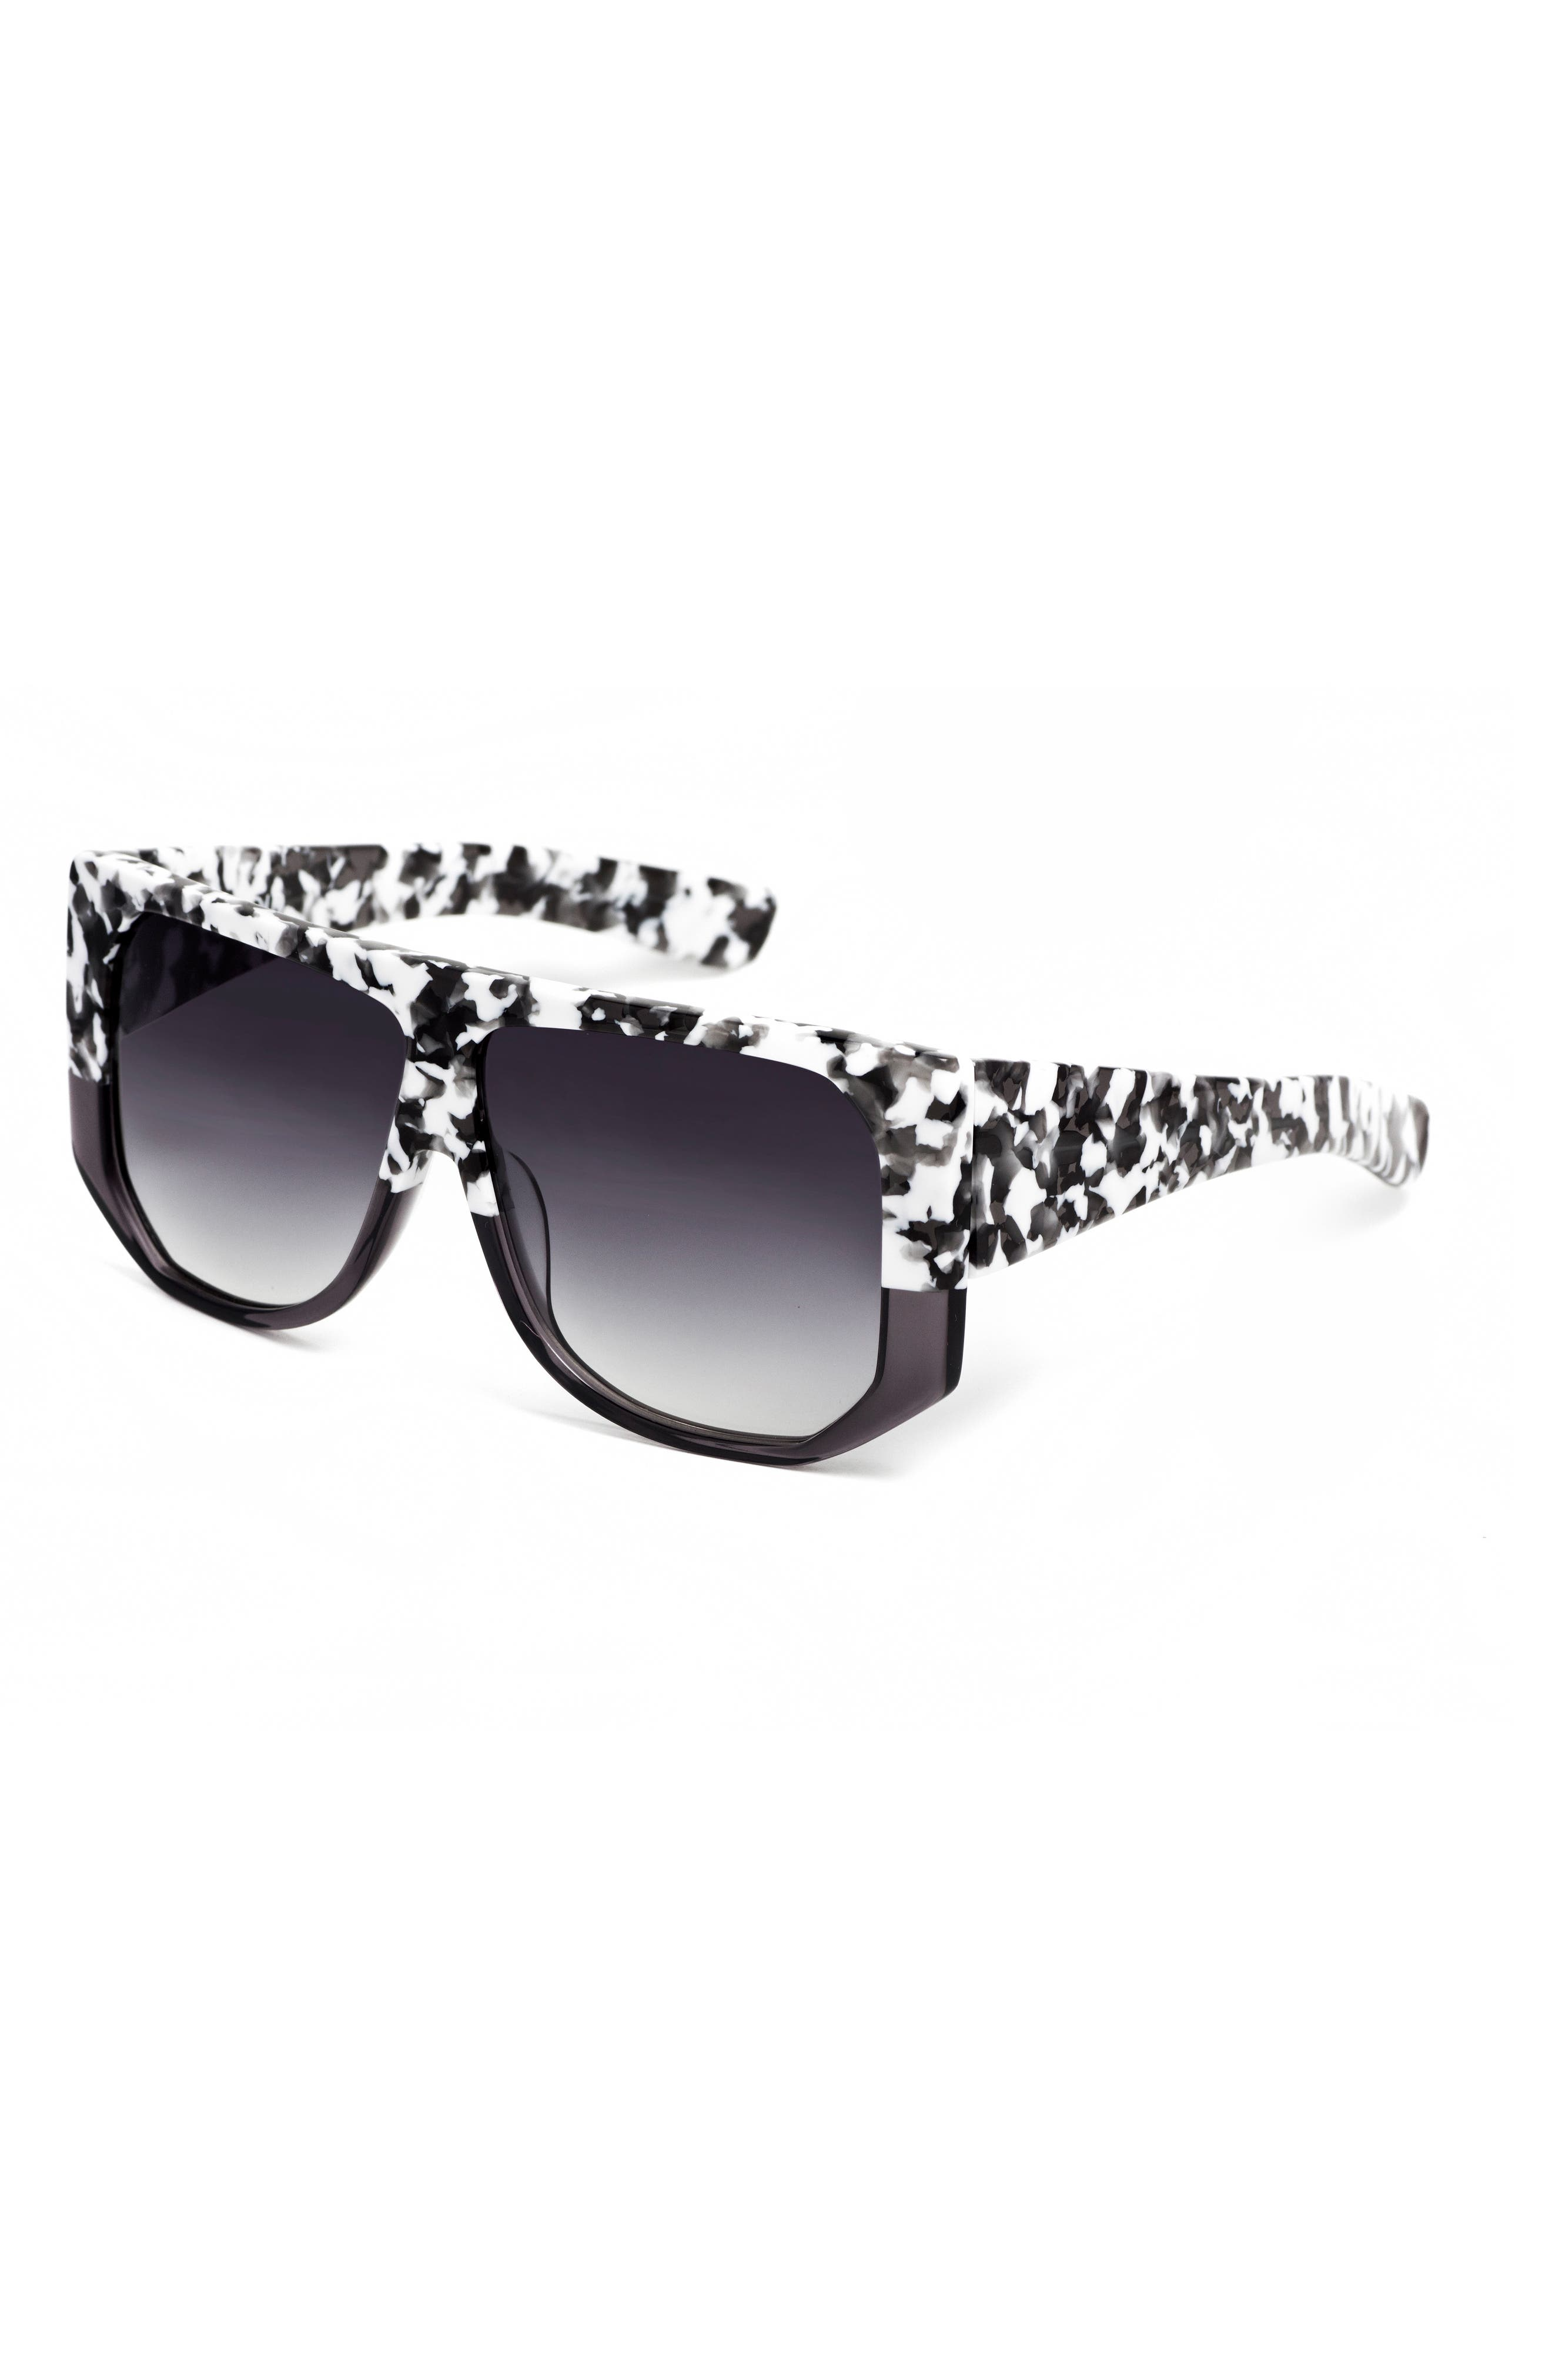 Frequent Flyer 58mm Sunglasses,                             Alternate thumbnail 4, color,                             WHITE CAMO